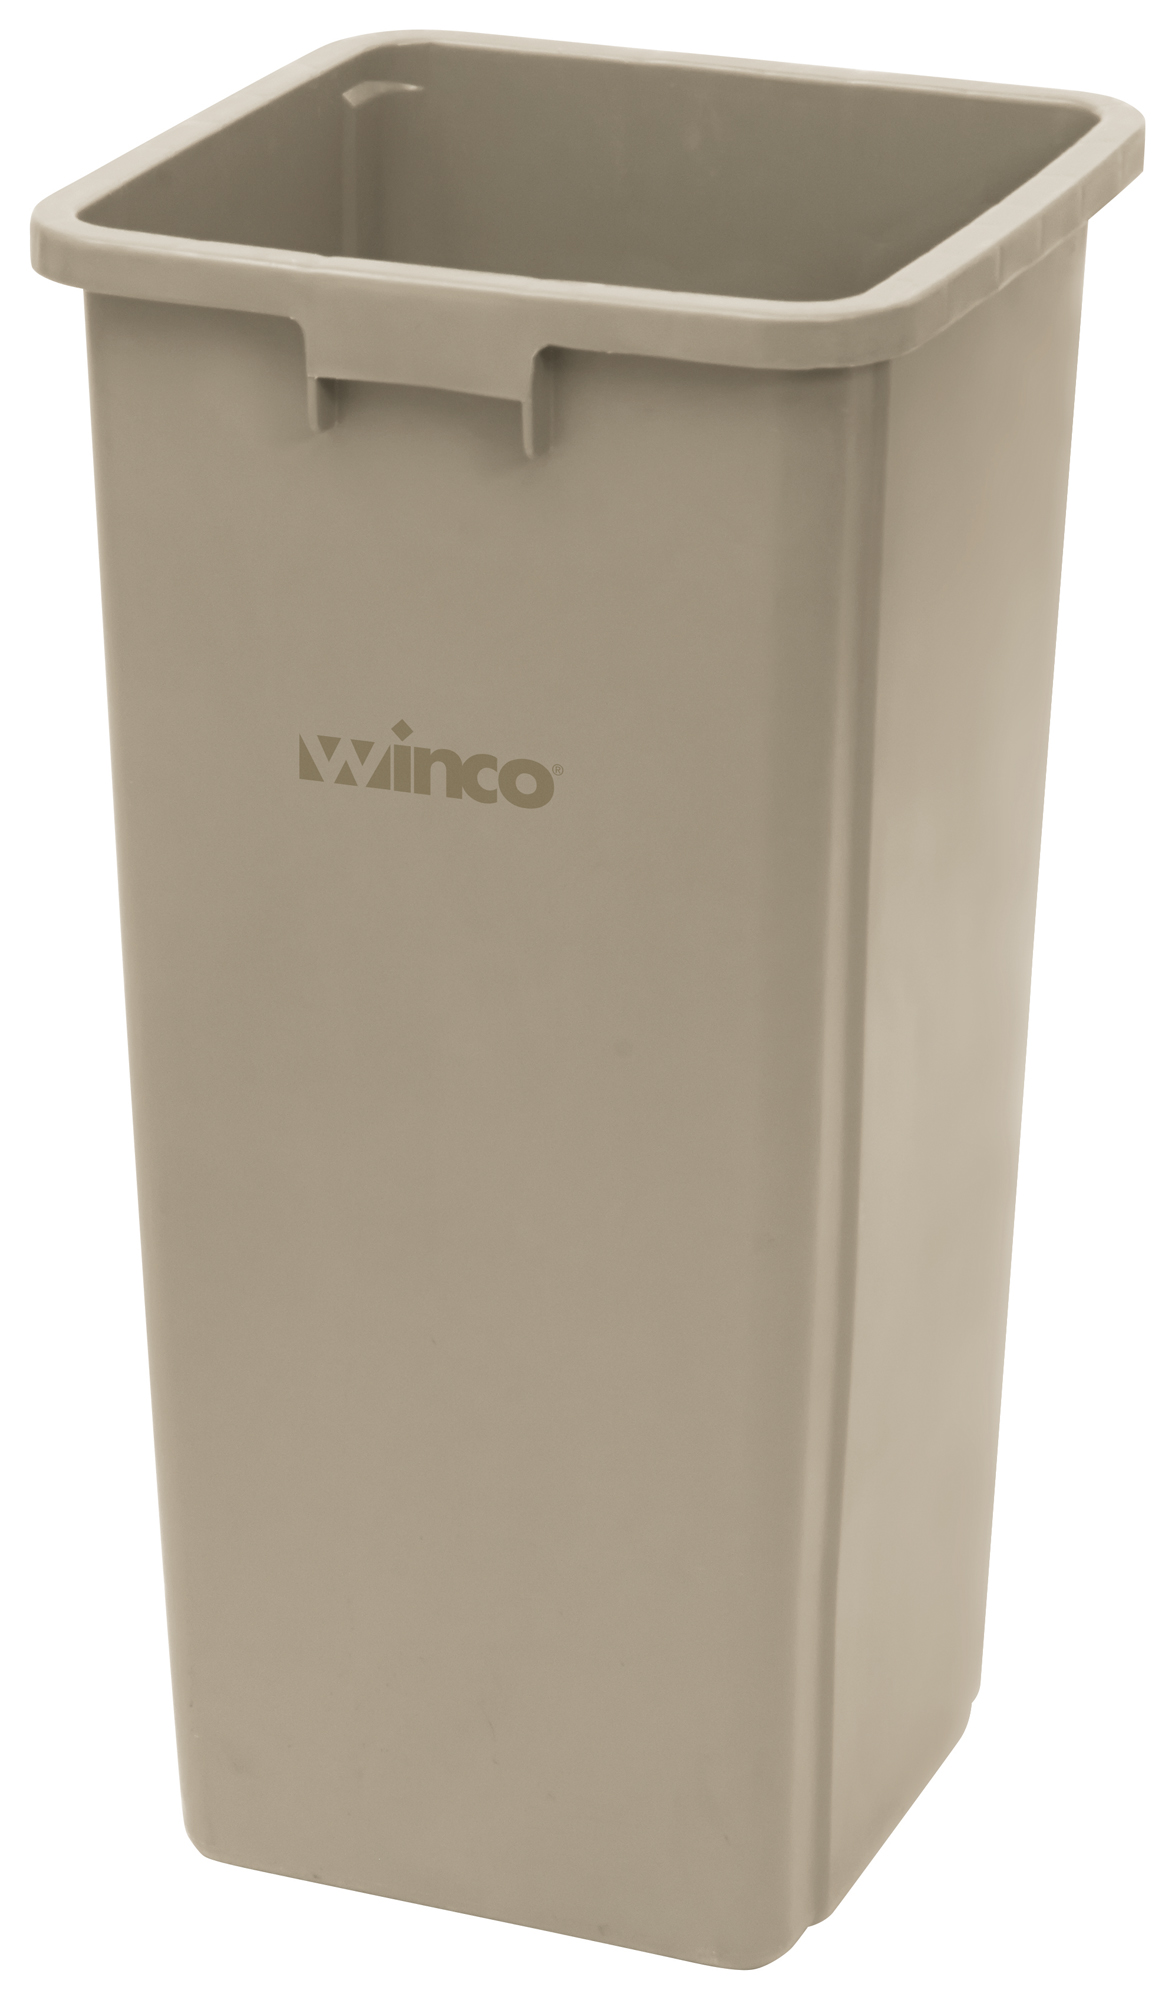 Winco PTCS-23BE trash cans & accessories